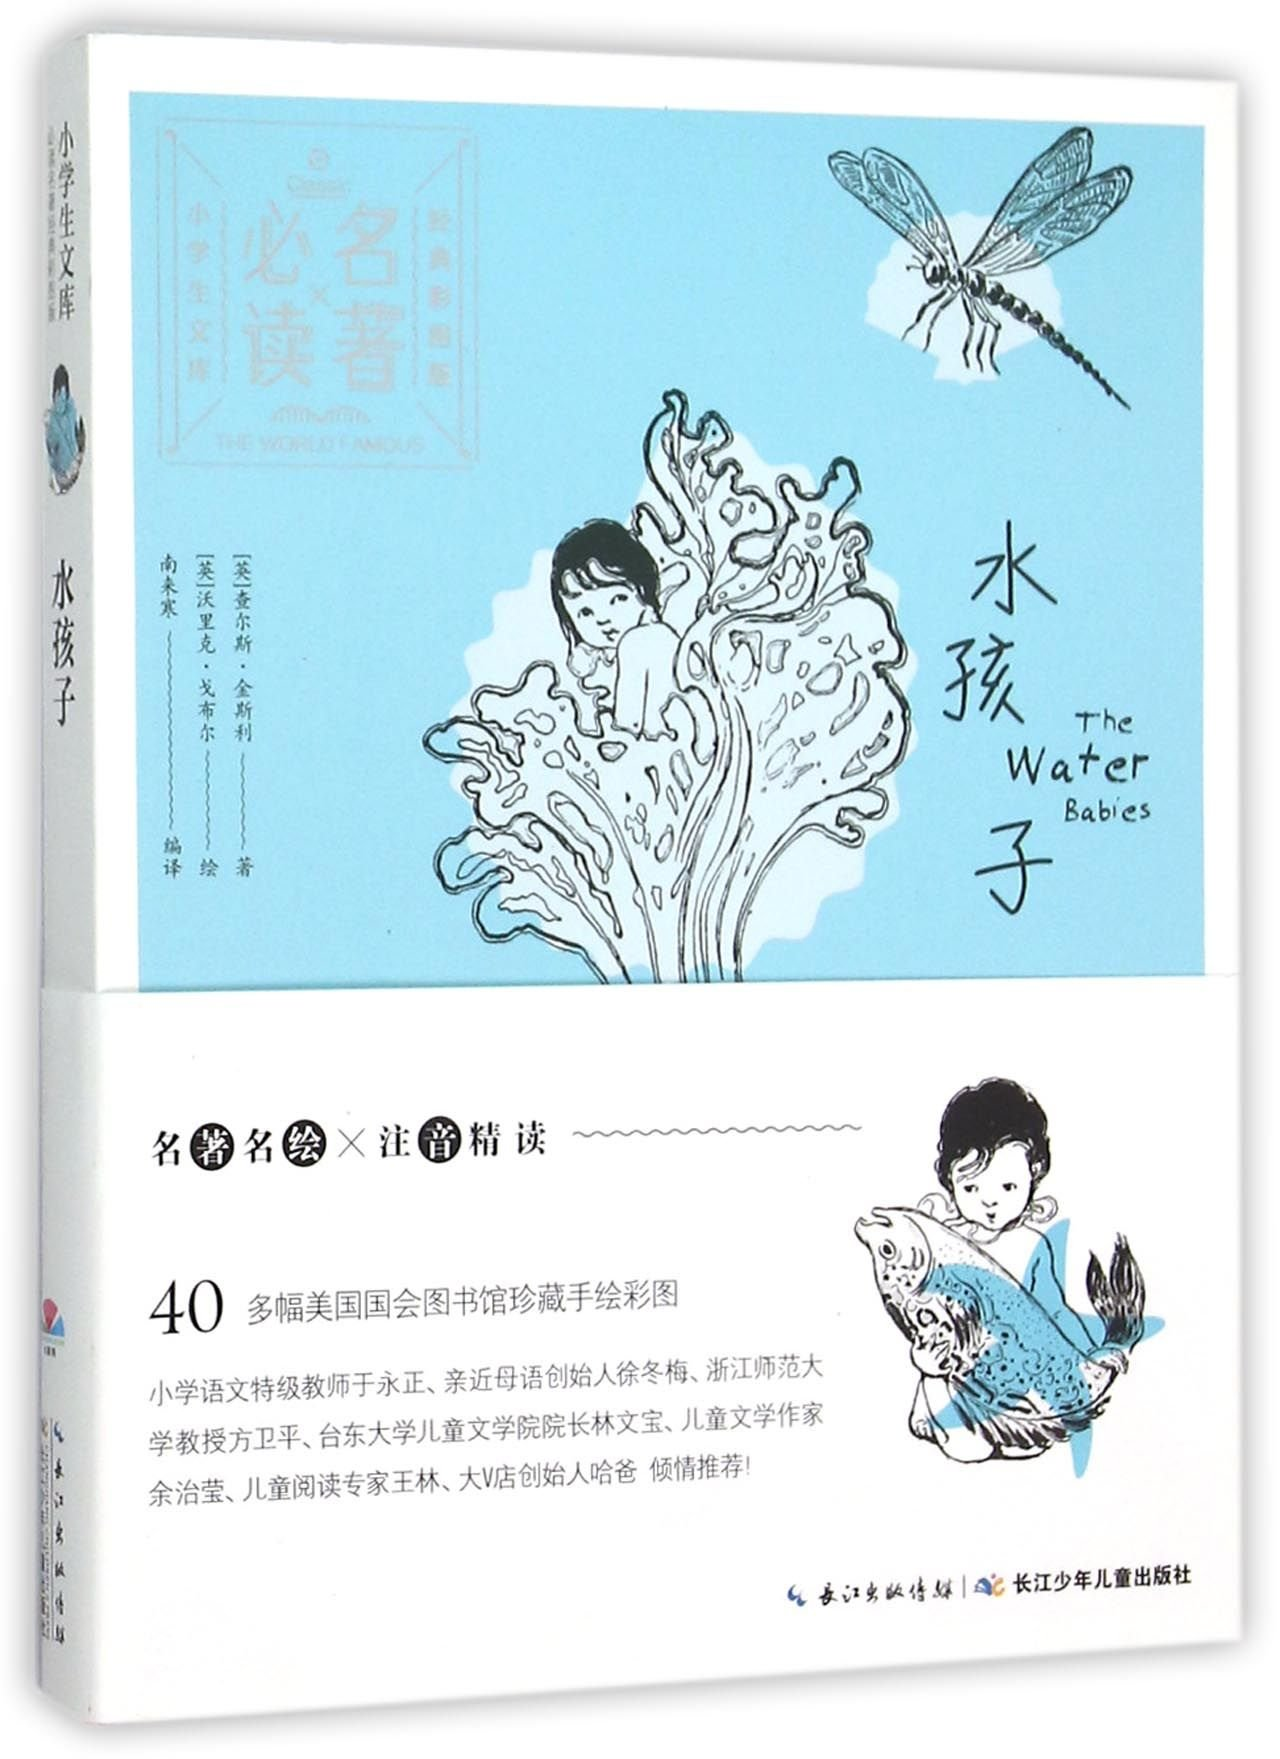 The Water Babies (Chinese Edition) PDF